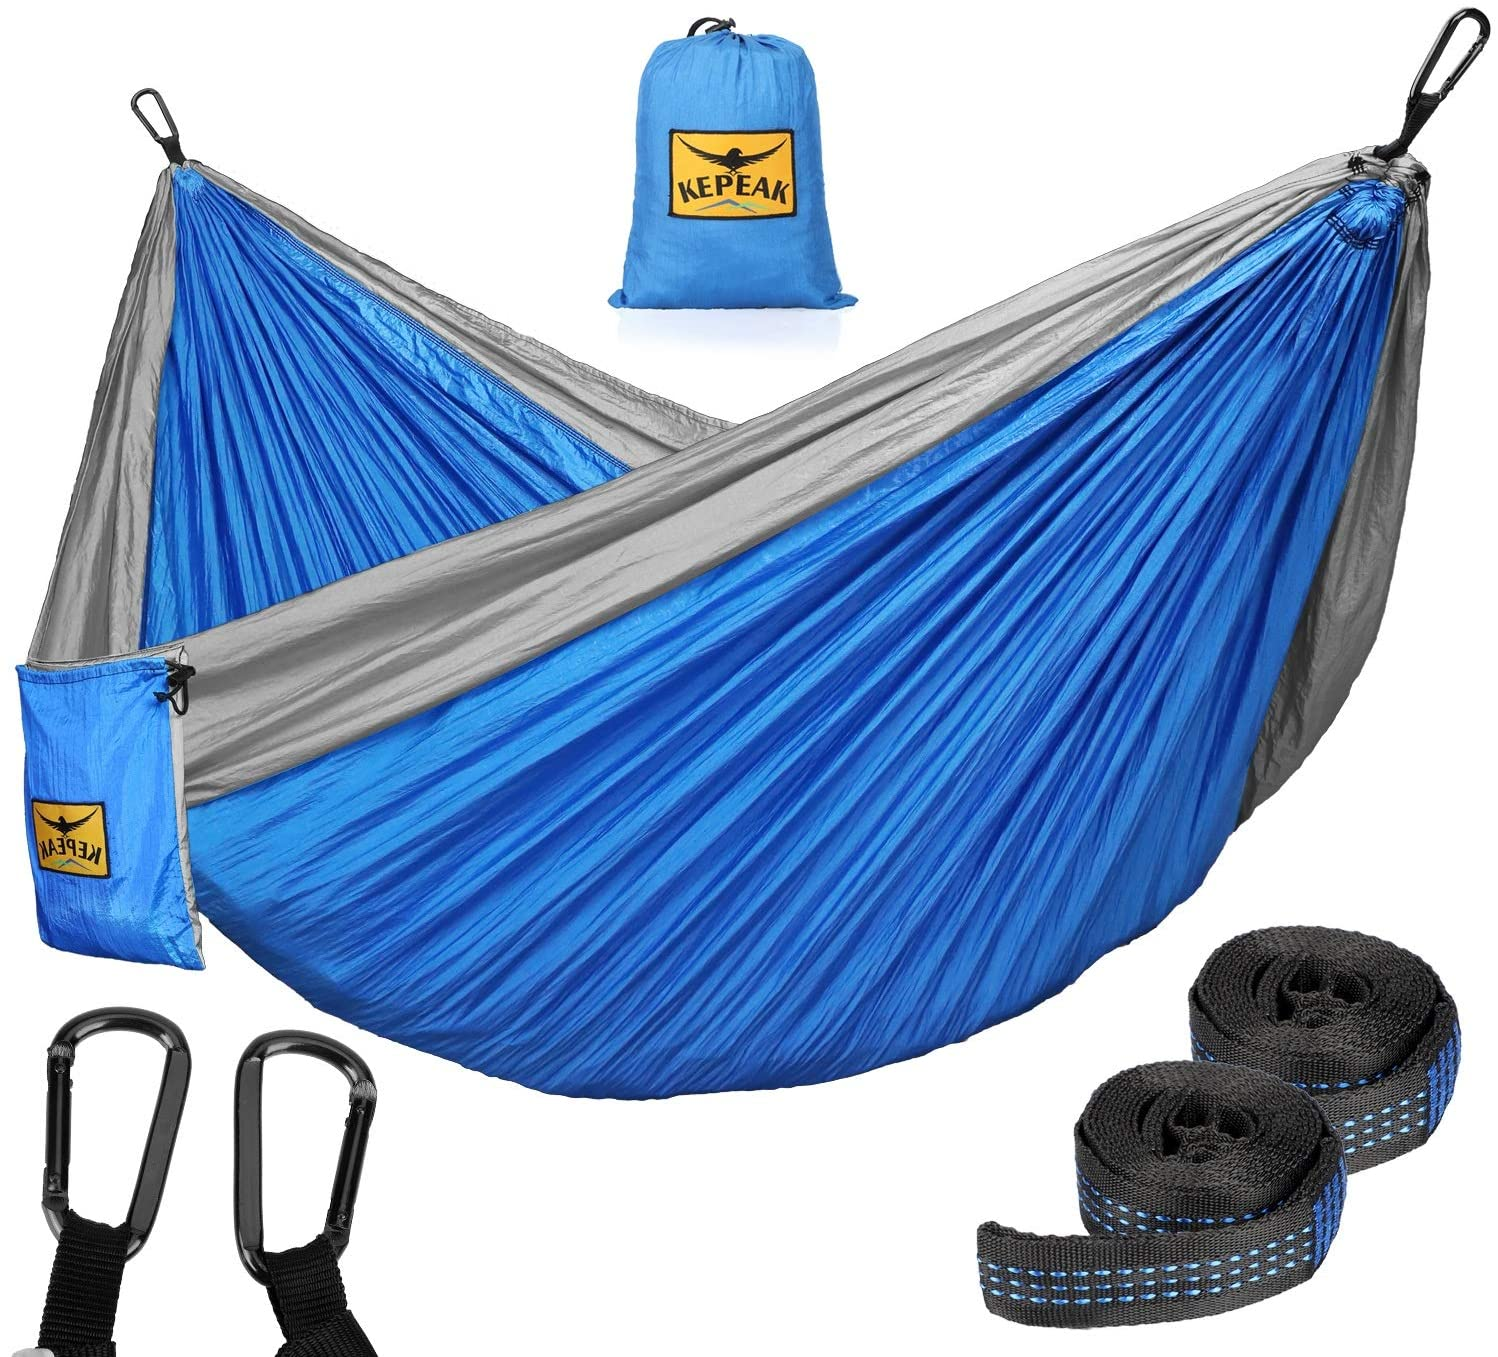 2 Person 260x150cm Hammock with Netting Mosquito Automatic